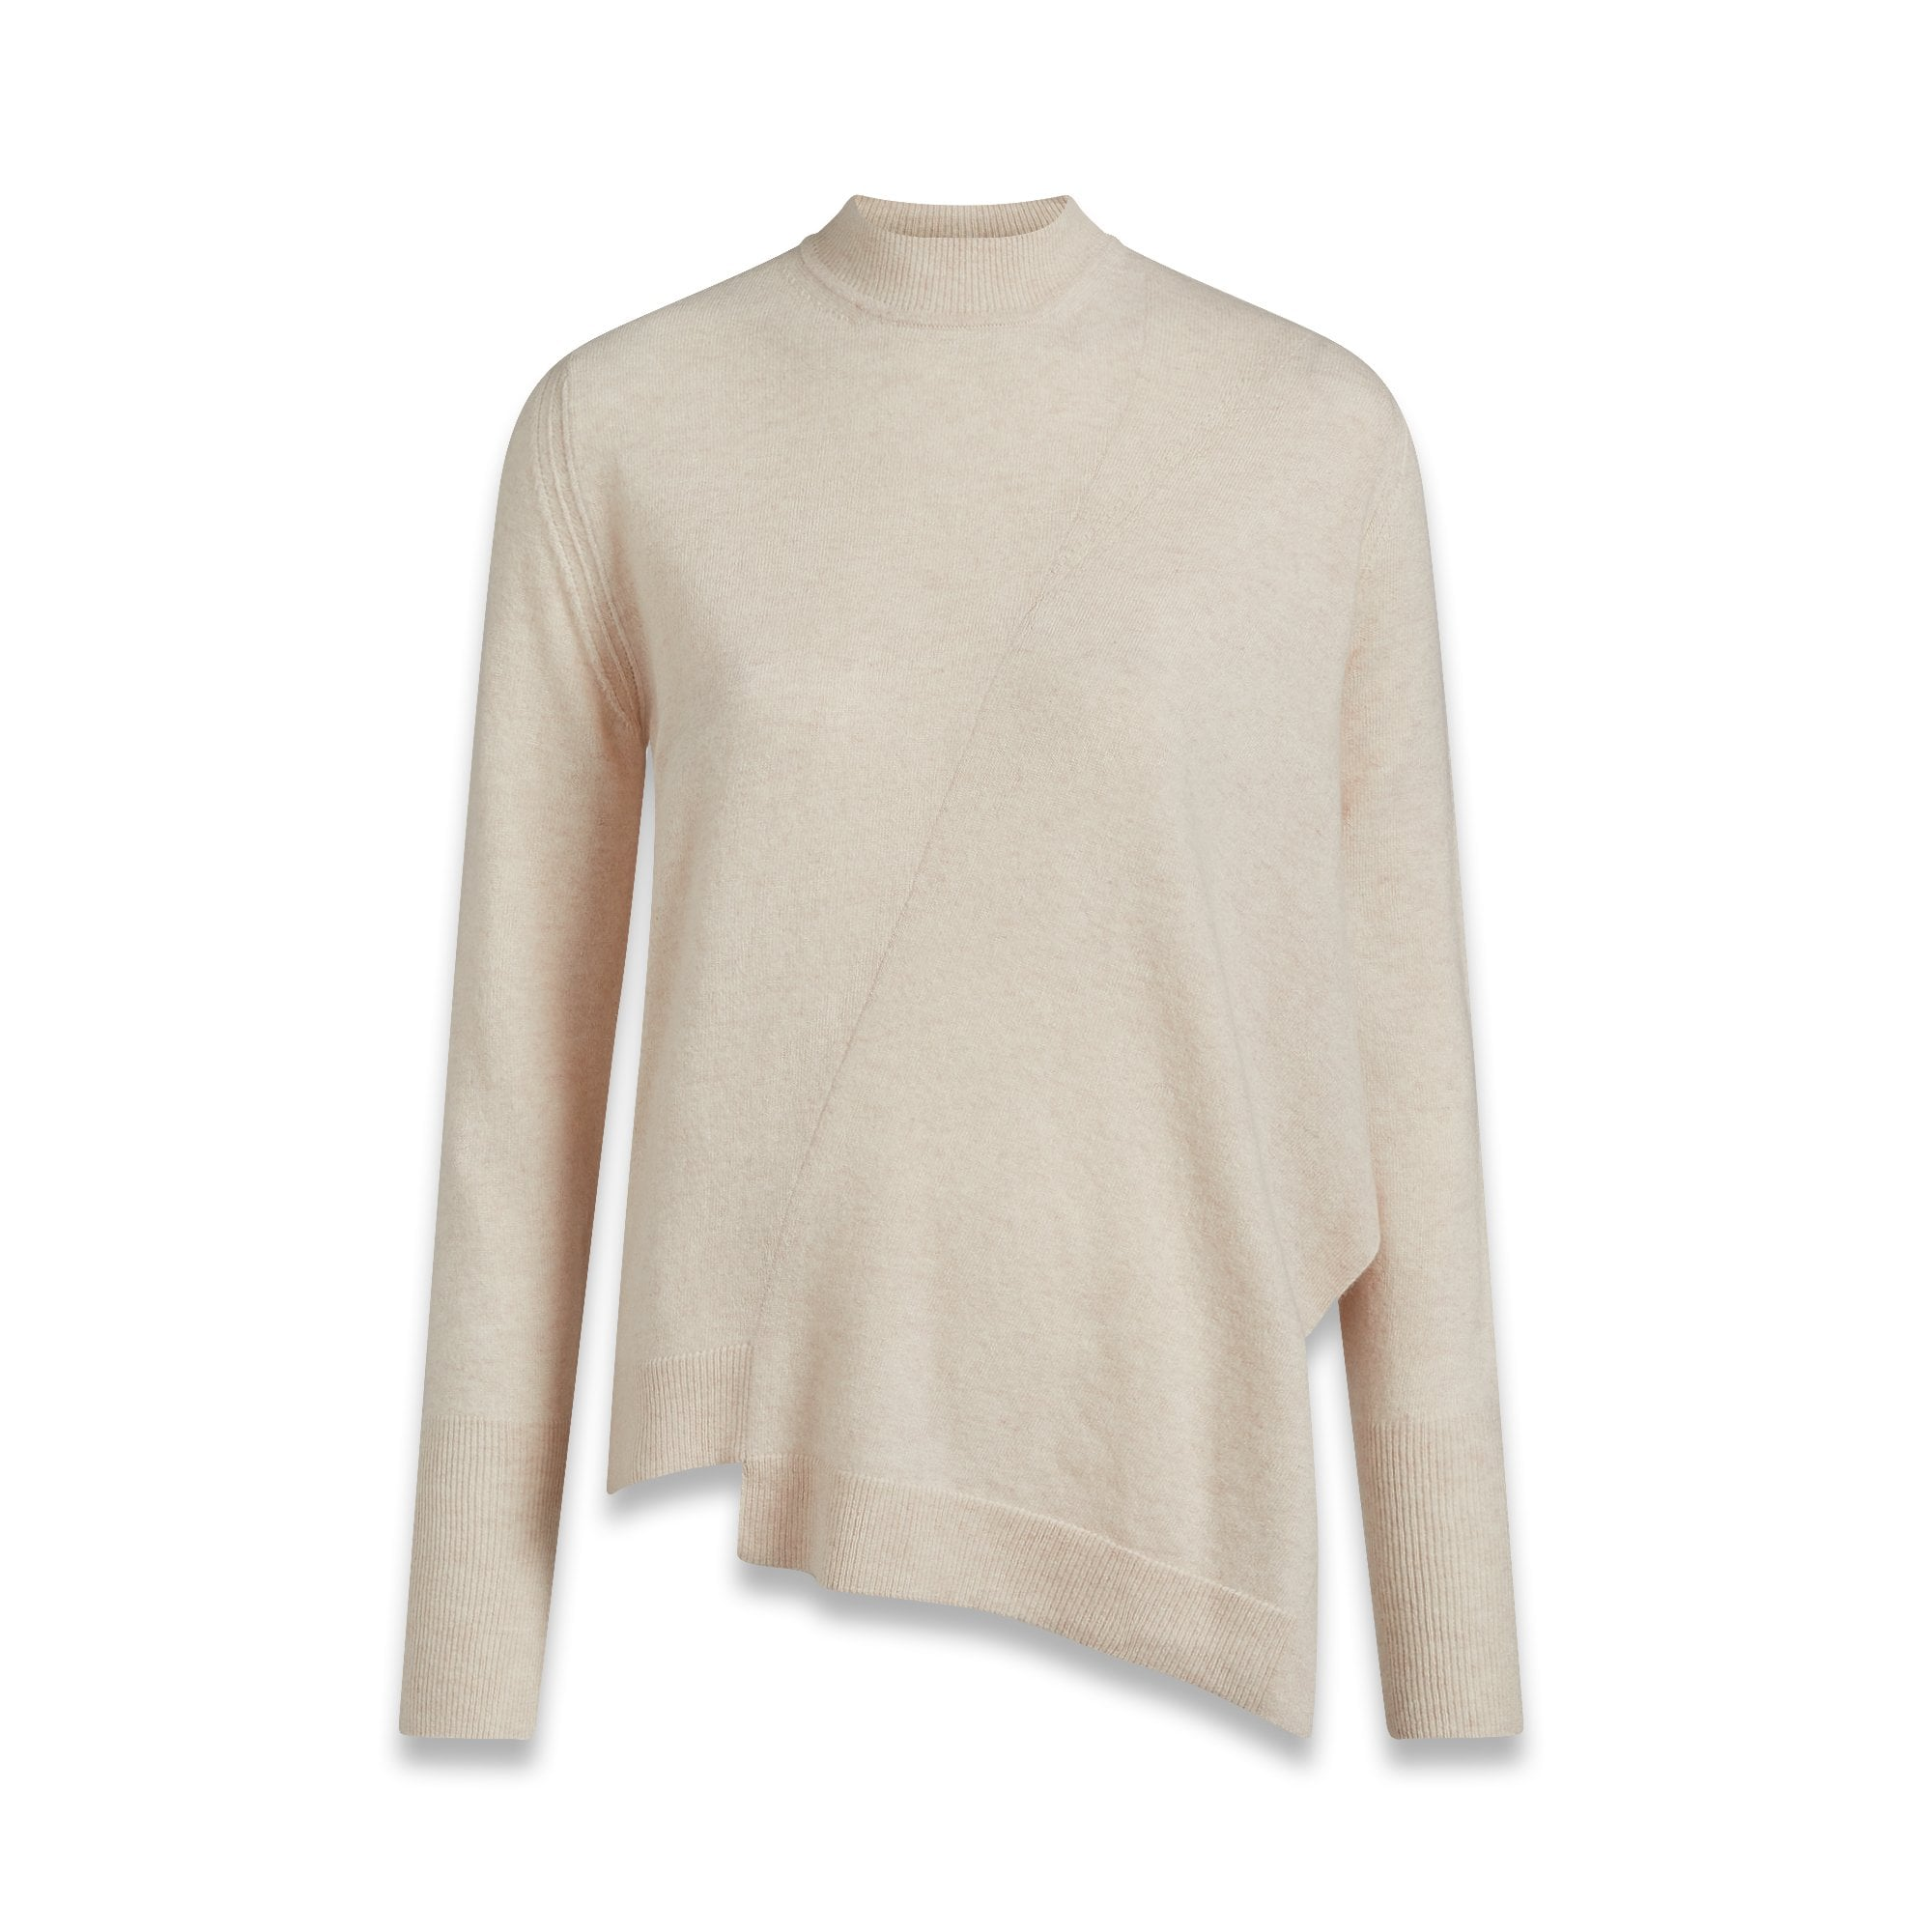 57360d76e794 Swanston Cashmere Knit in Champagne Pink